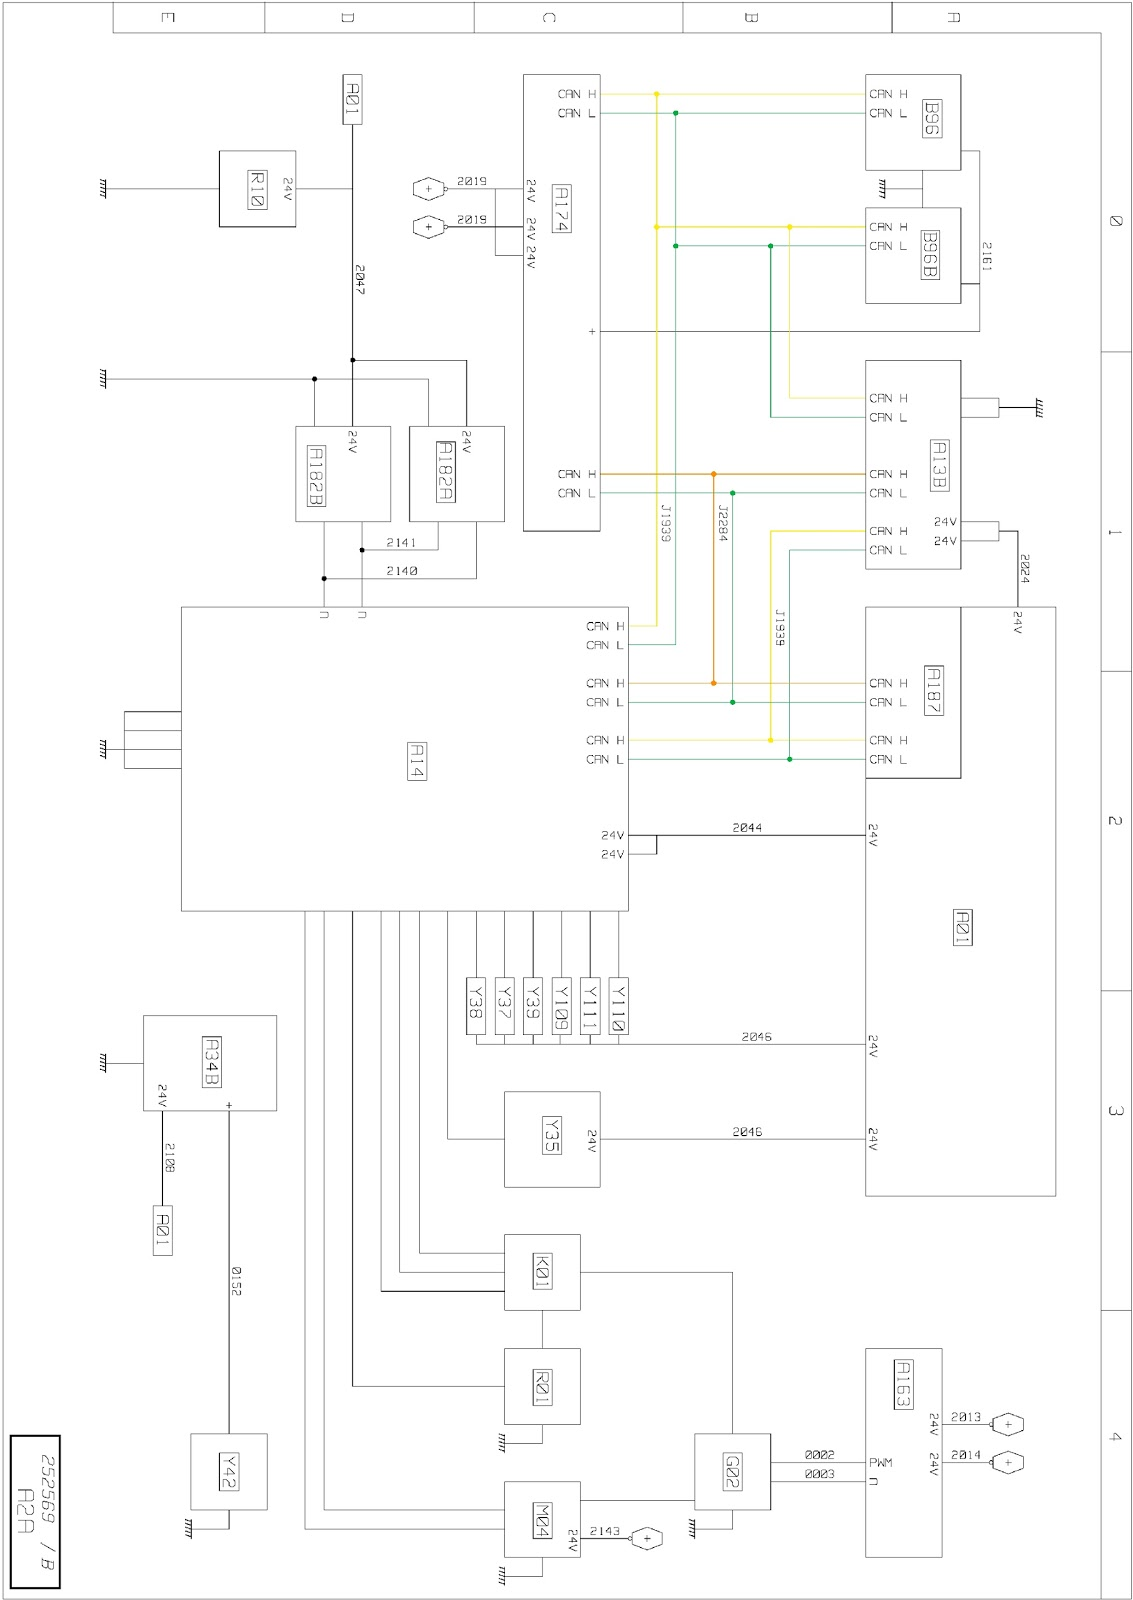 Euro Vi Engine Management Wiring Diagrams Renault Trucks T A14 Ecu Cc3 Cc4 Ccg Cch A34b Air Conditioning Gbp A163 Central Chassis Area Information Cciom Bah Cdu